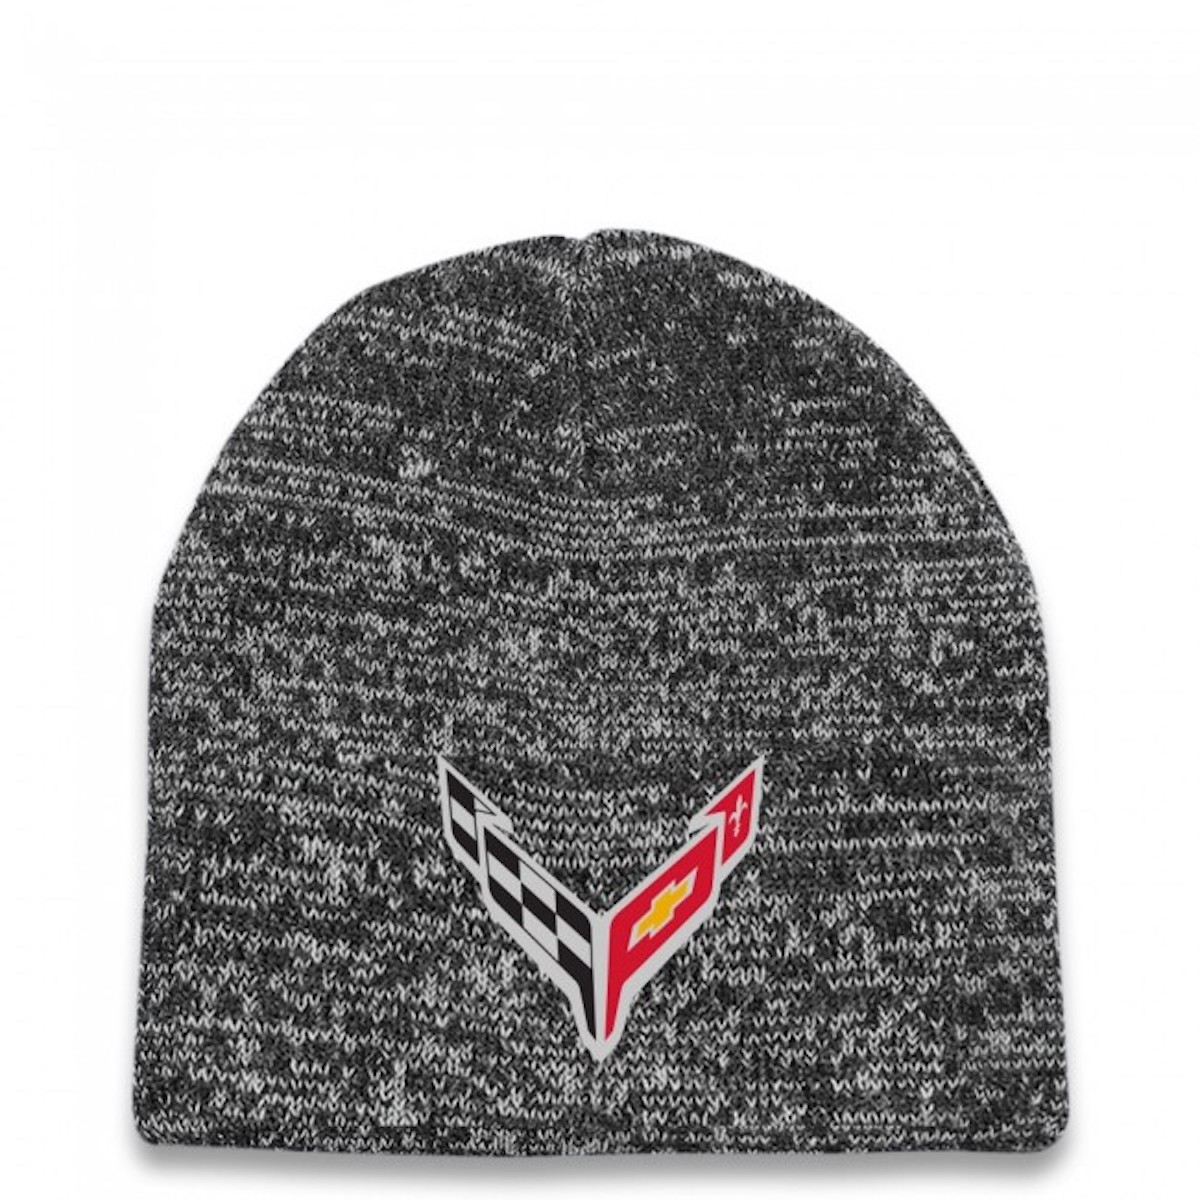 A view of the Corvette Racing C8.R Double Knit Beanie, available at the Official Corvette Racing Store for $25.00 USD